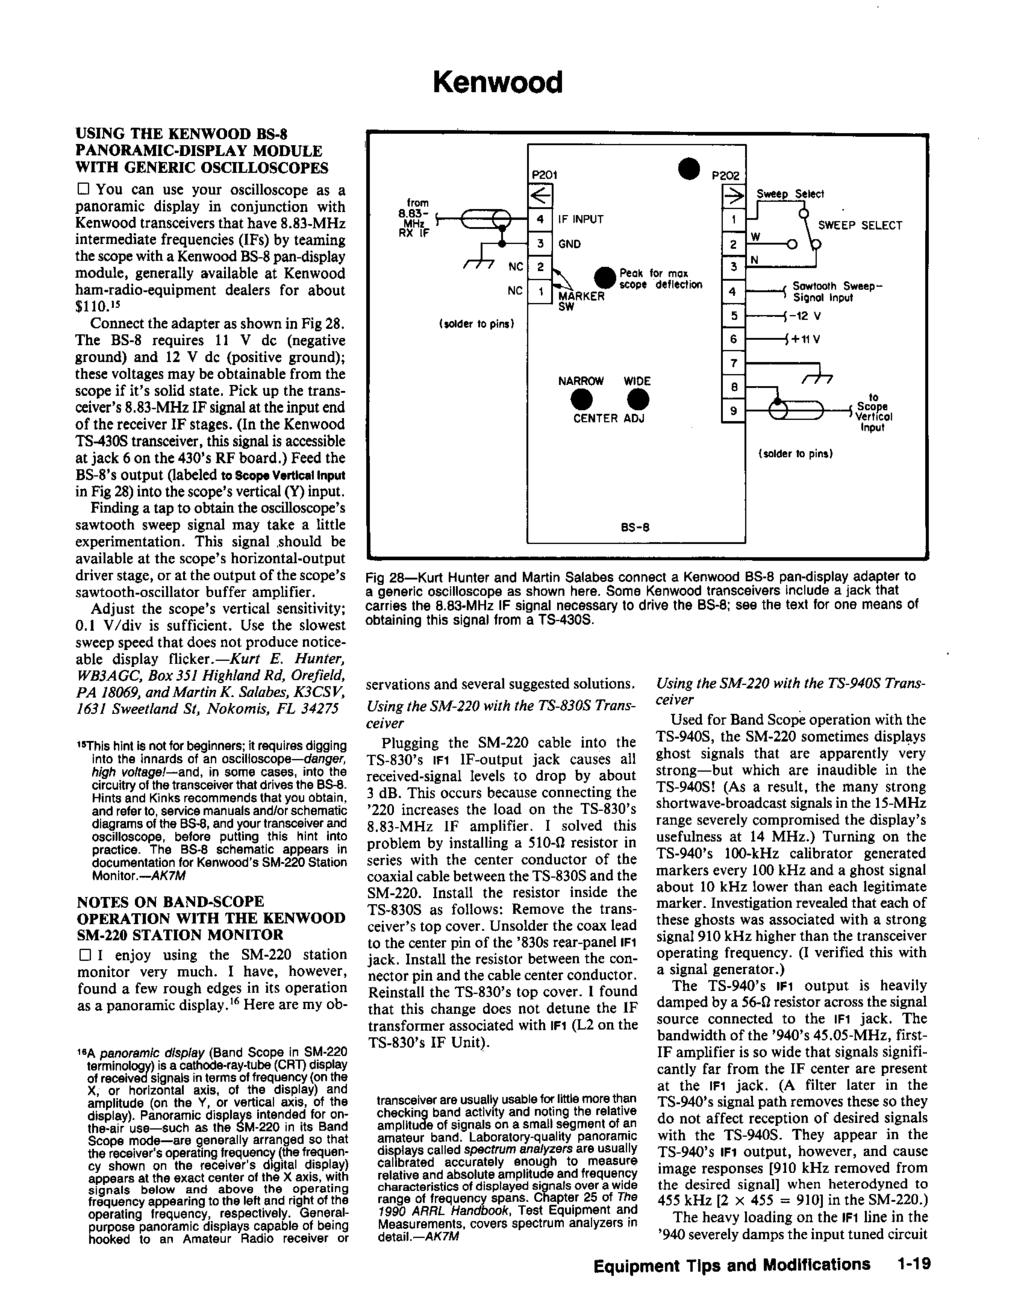 Hints And Kinks For The Radio Amateur Pdf Free Download Tda7294 Ic Second Voice Recorder Module Service Manual Schematics Datasheets Eeprom Bins Pcb Kenwood Usng Bs 8 Panoramc Dsplay Wth Generc Osclloscopes D You